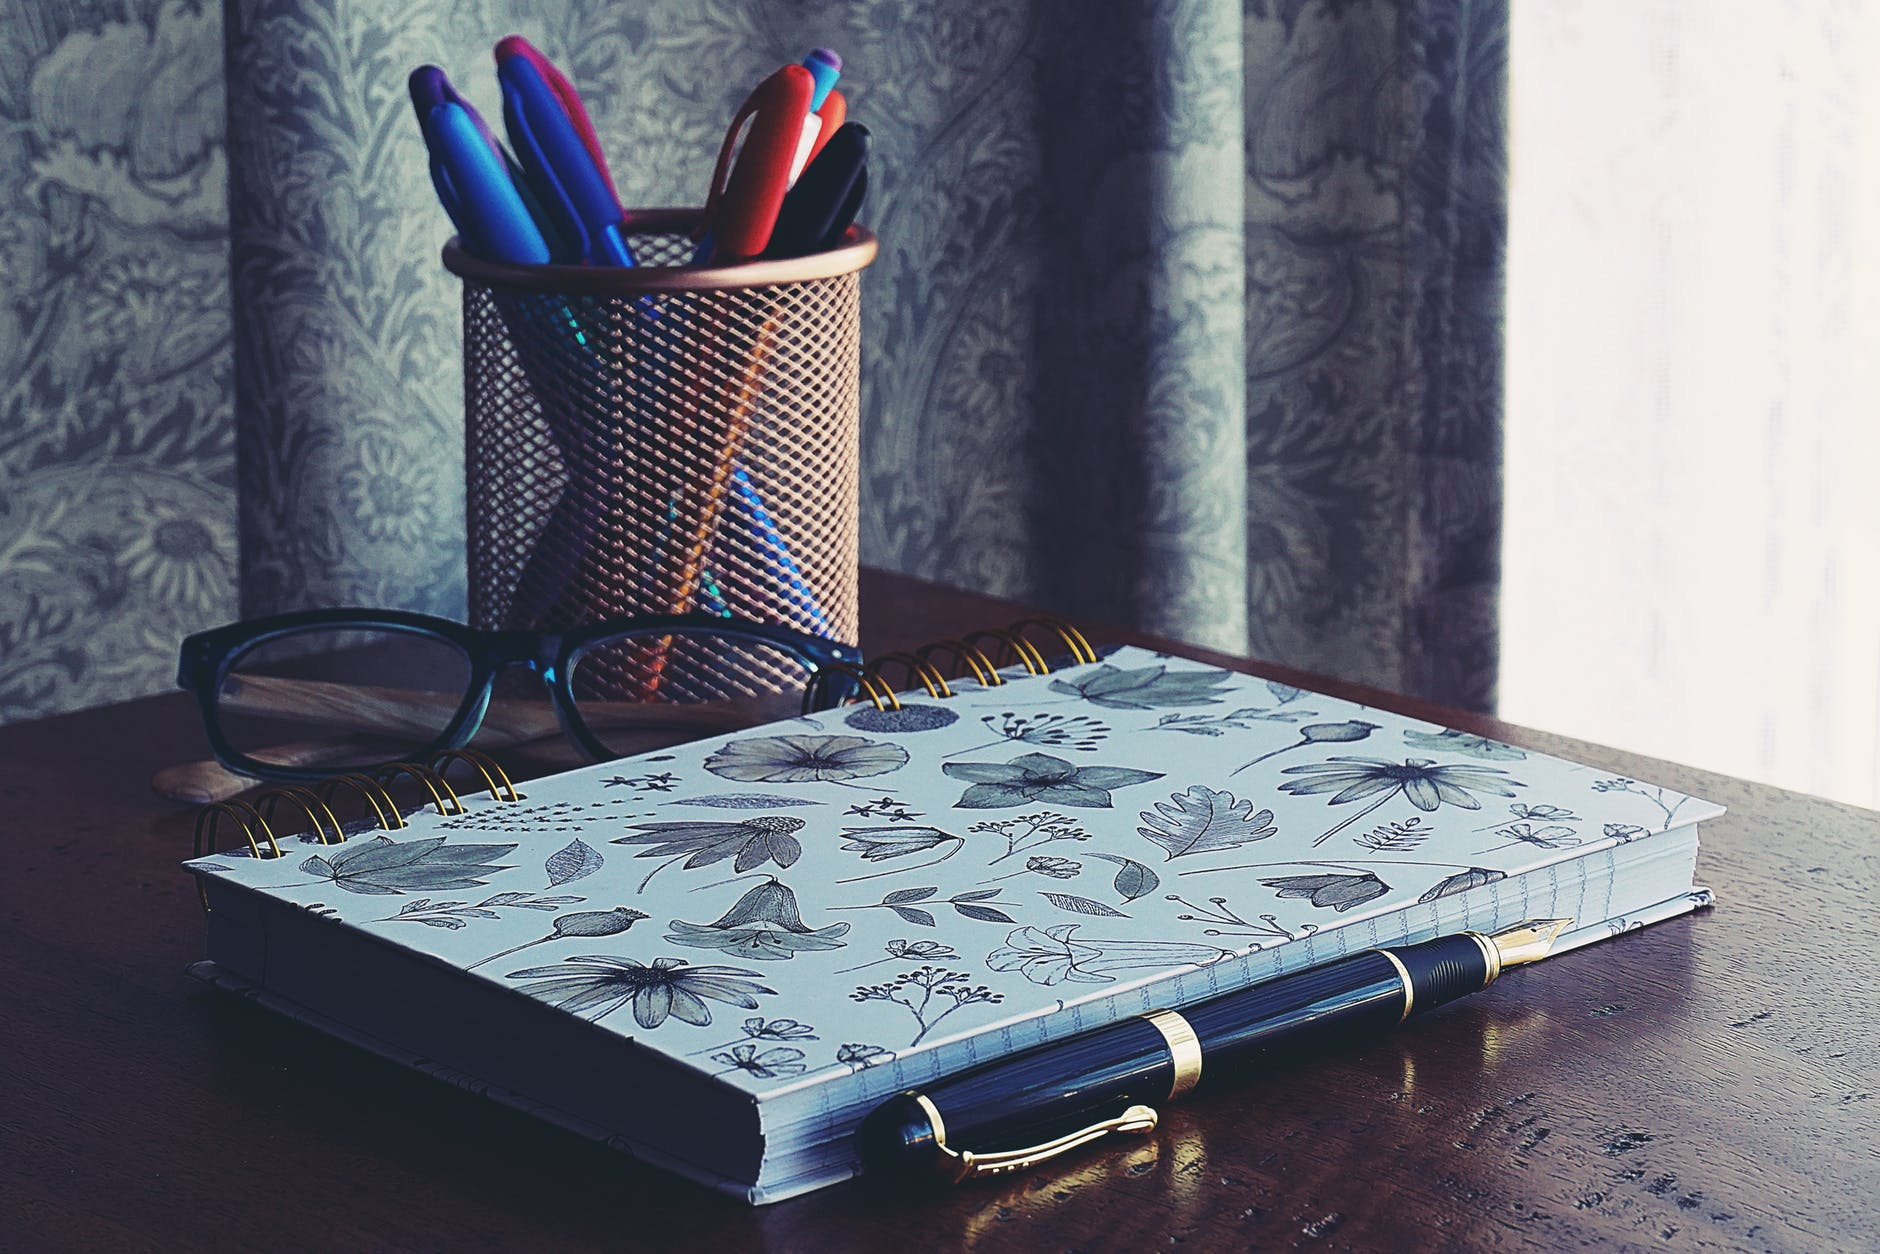 close up photography of notebook near pens